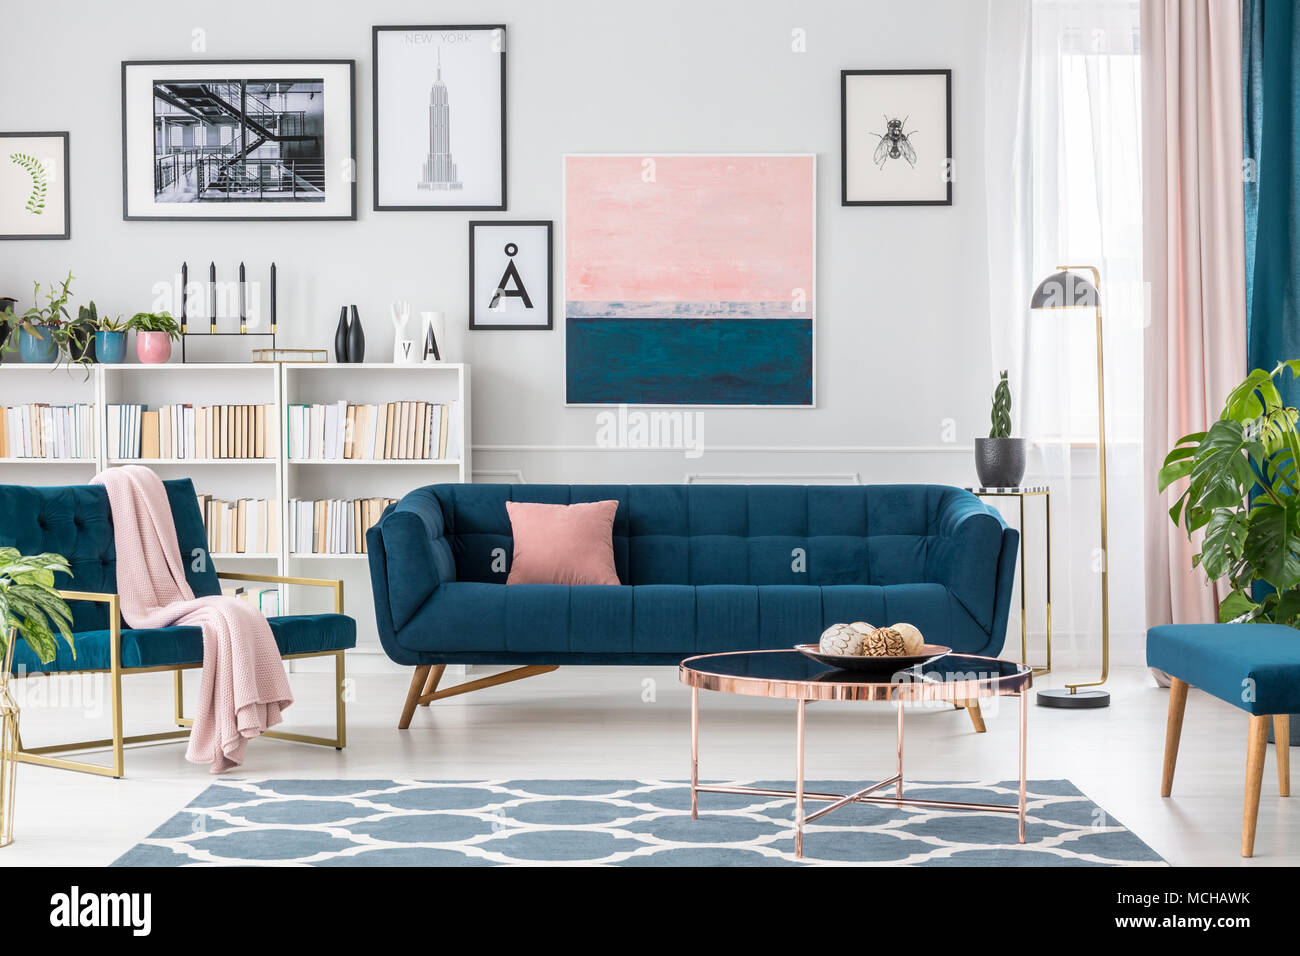 Modern Living Room Interior With Blue Sofa Rug Art Collection And